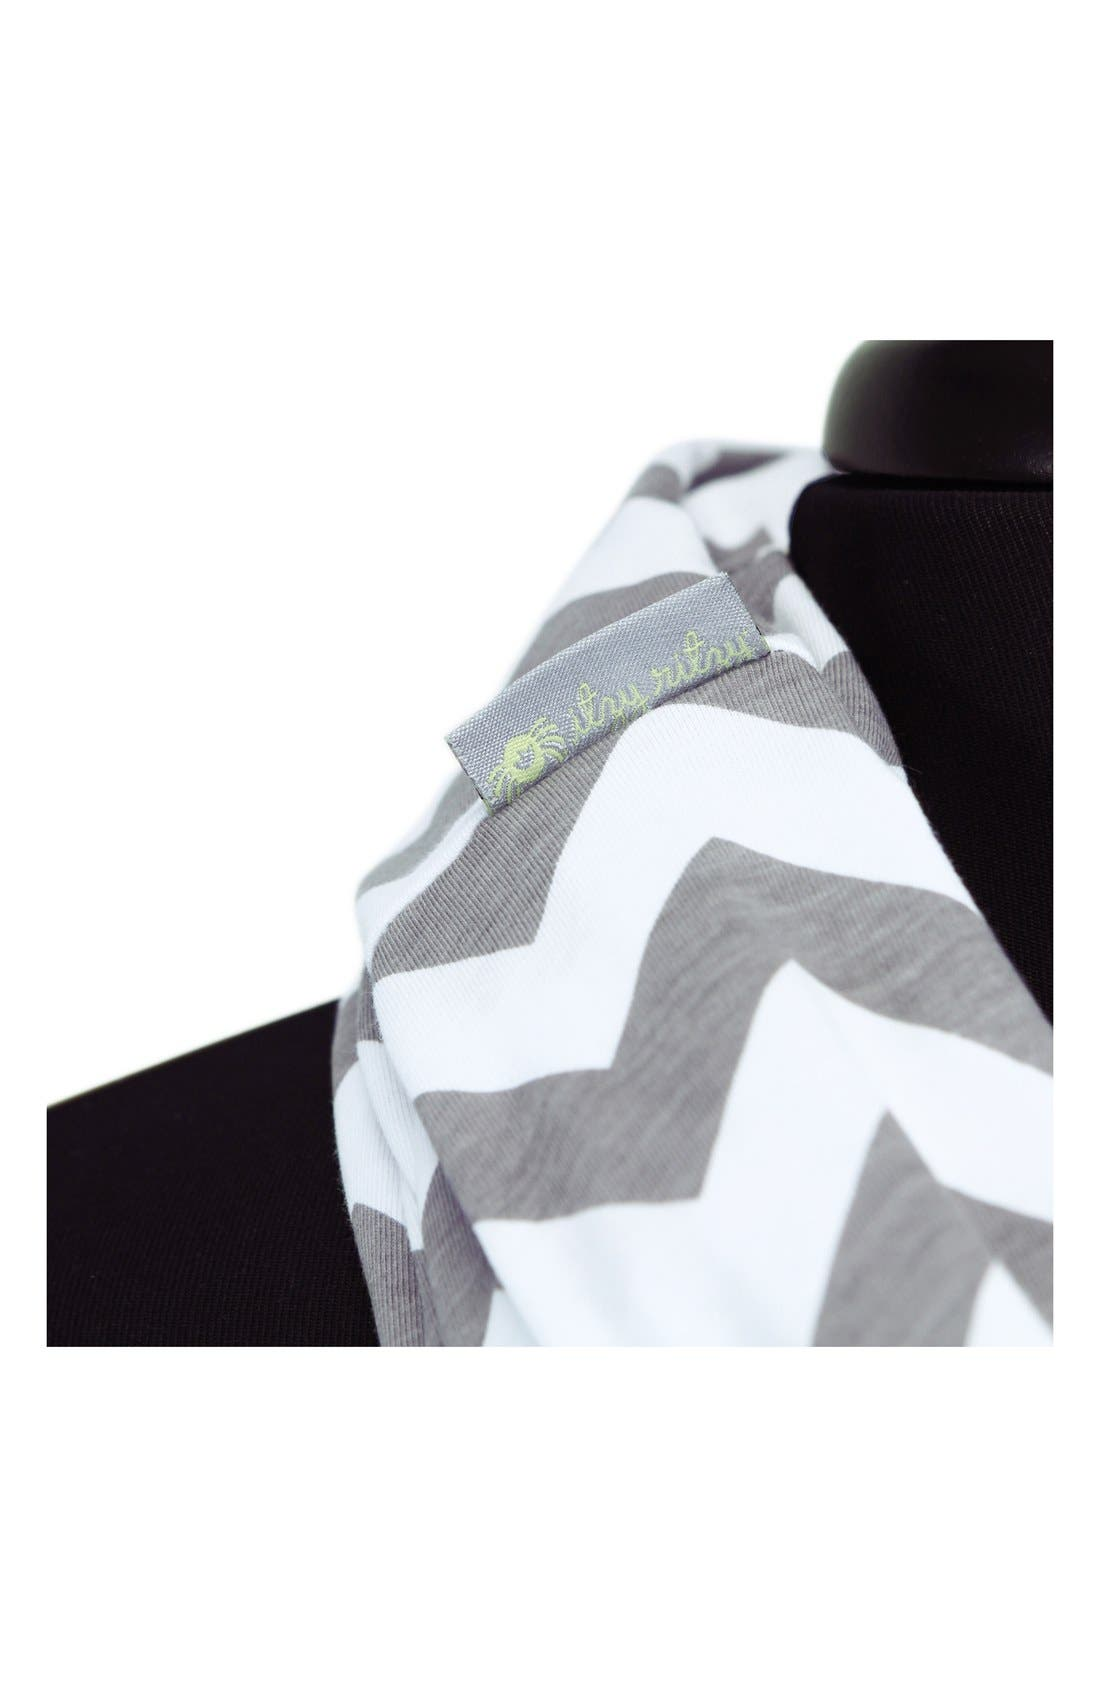 Infinity Nursing Scarf,                             Alternate thumbnail 4, color,                             Grey/ White